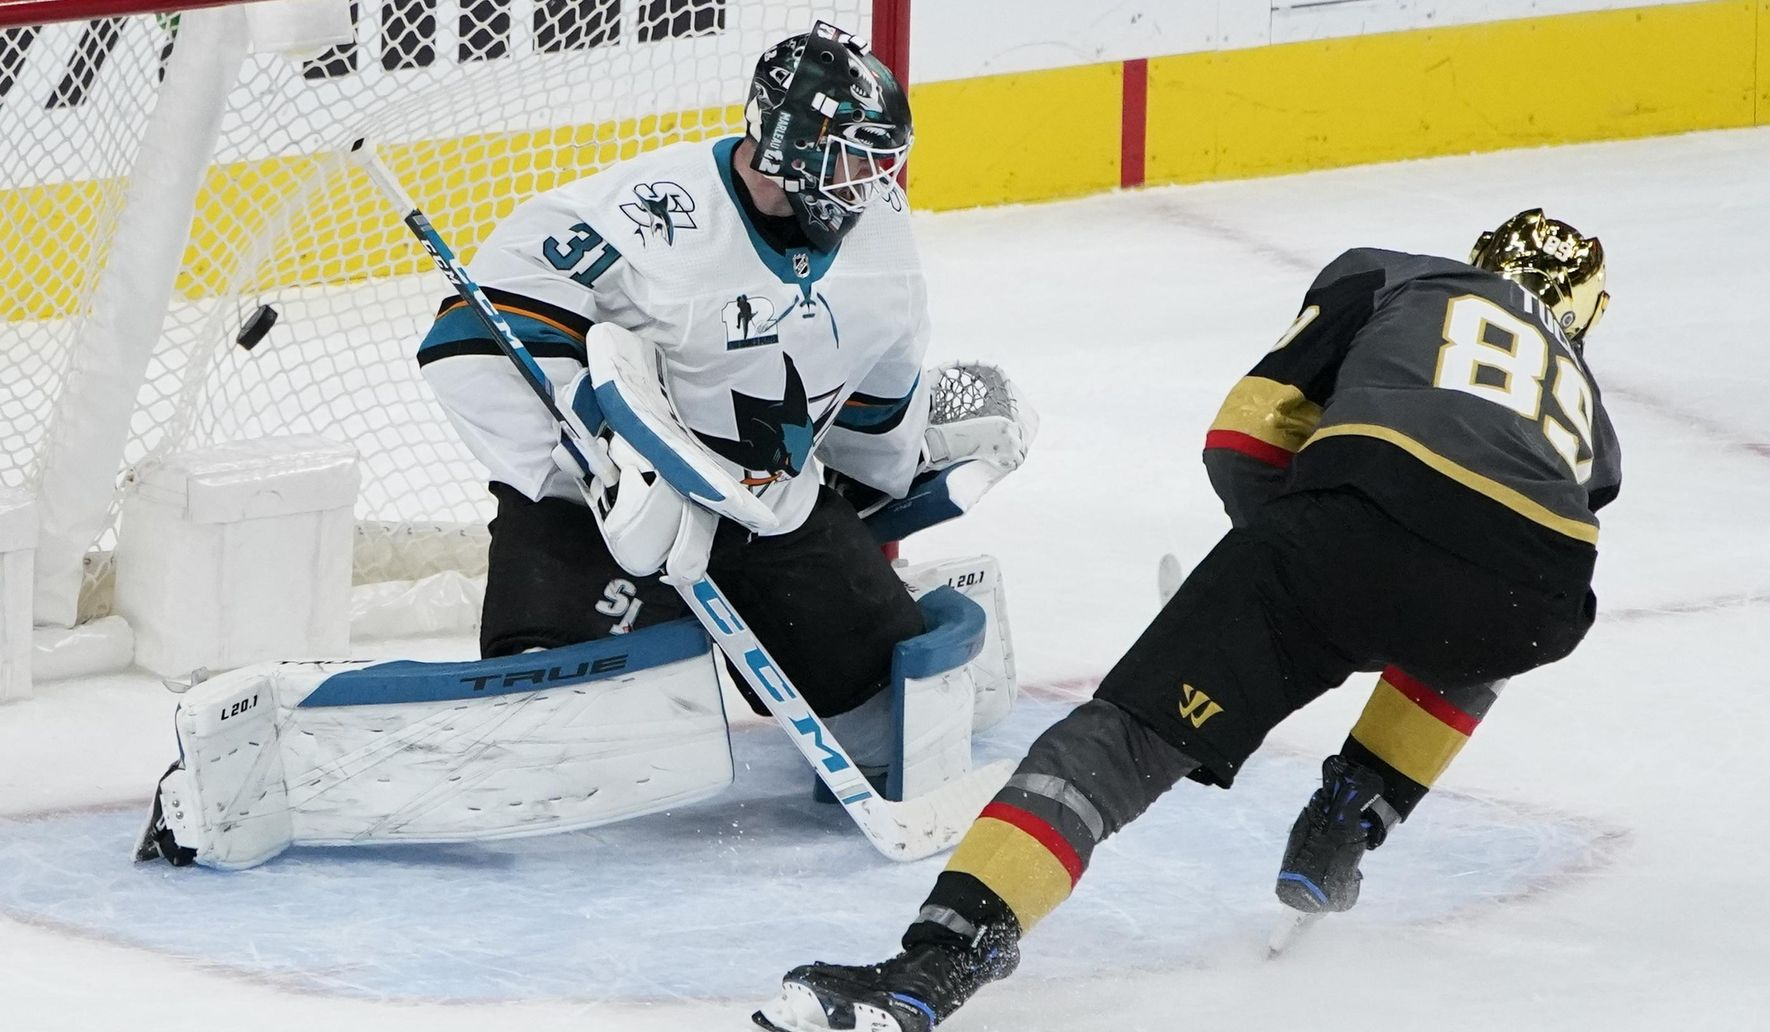 Golden Knights top Sharks 3-2 in shootout on historic night